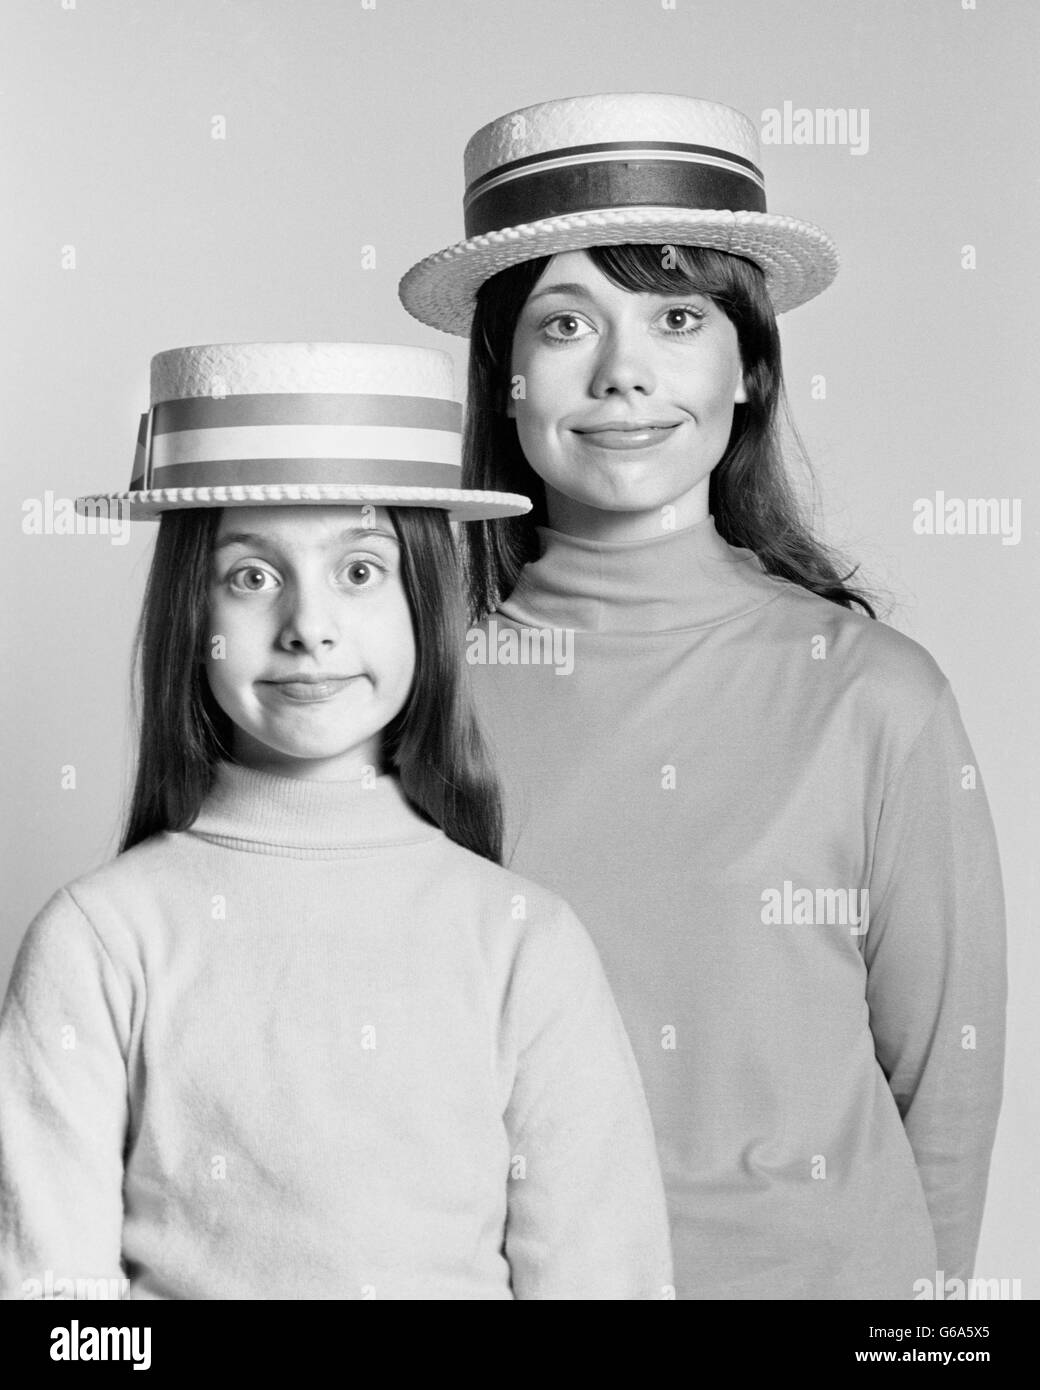 1970s MOTHER AND DAUGHTER PORTRAIT LOOK ALIKE SILLY FACIAL EXPRESSION STRAW BOATER HATS - Stock Image